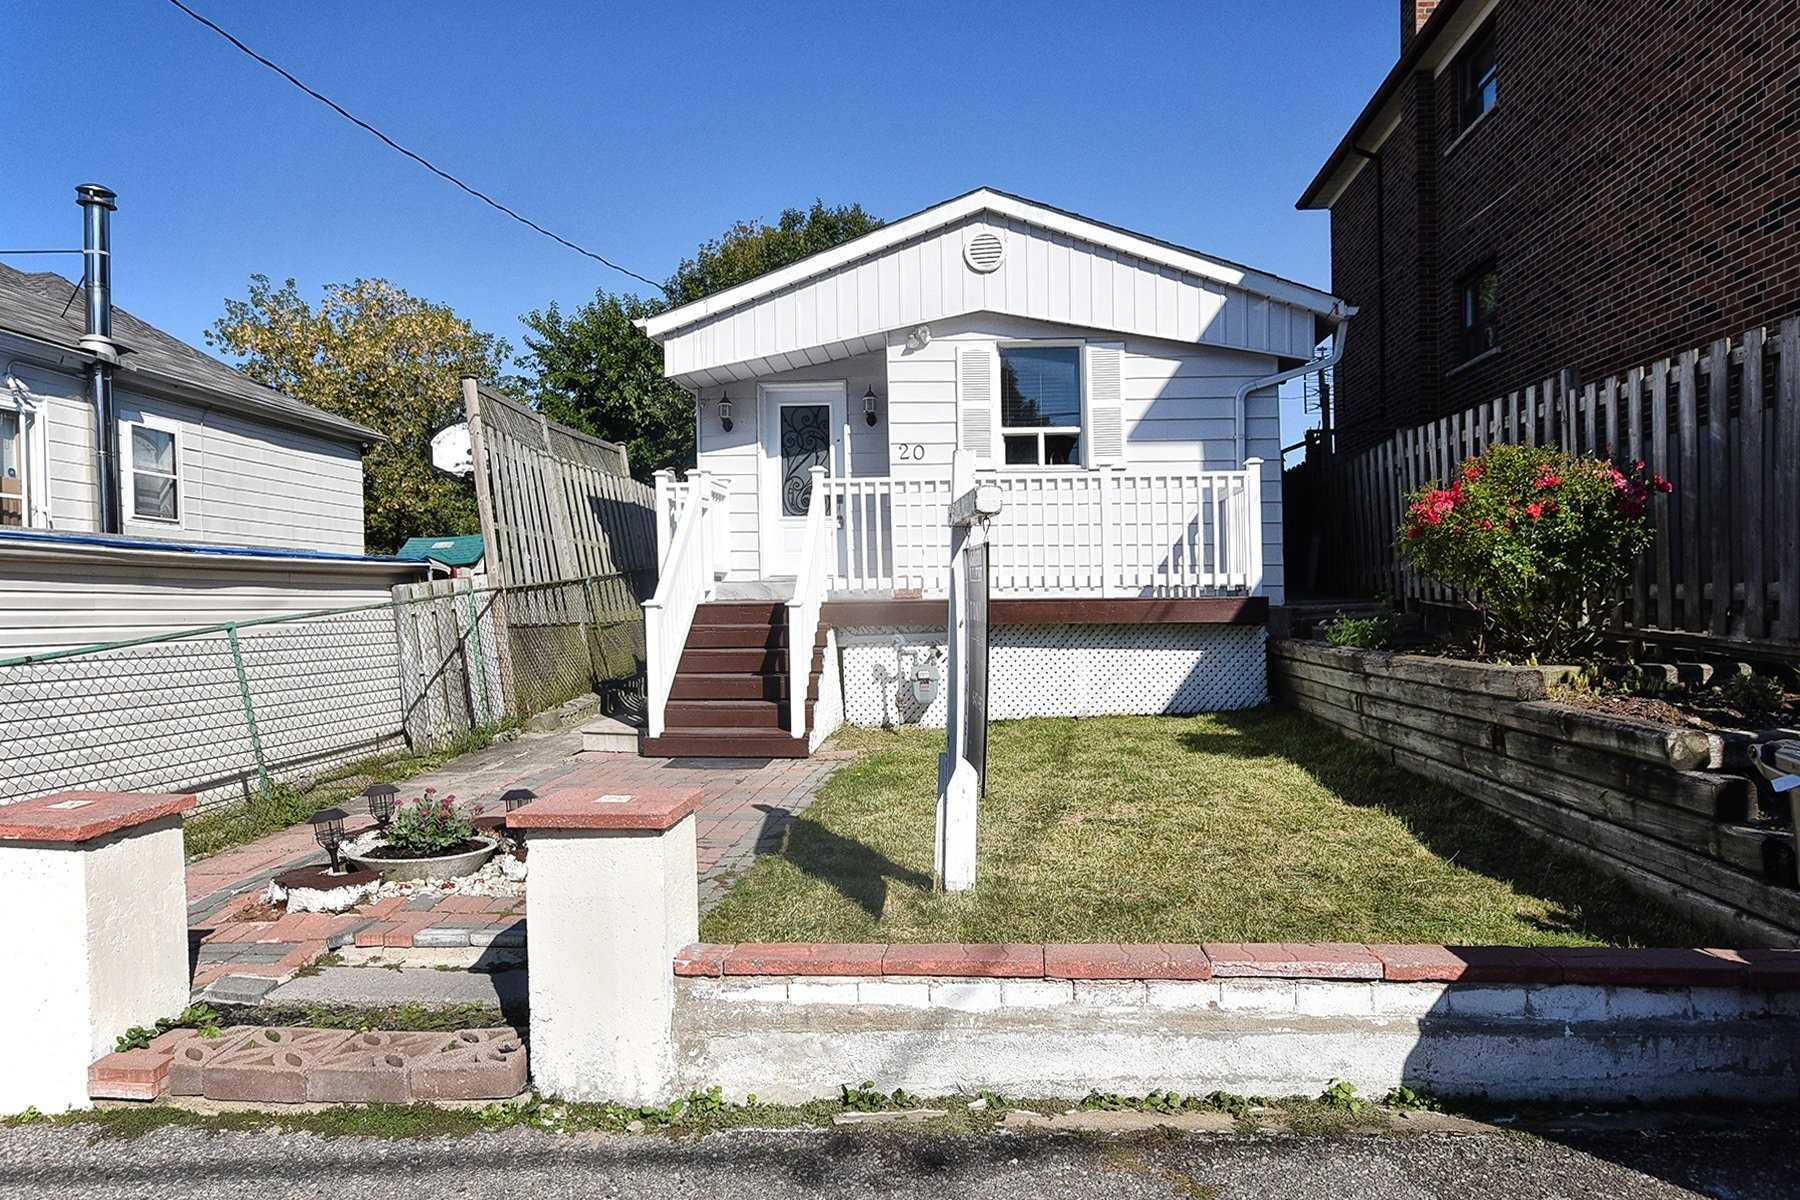 20 Butterworth Ave, Toronto, Ontario M1L1H1, 3 Bedrooms Bedrooms, 6 Rooms Rooms,2 BathroomsBathrooms,Detached,For Sale,Butterworth,E4927347